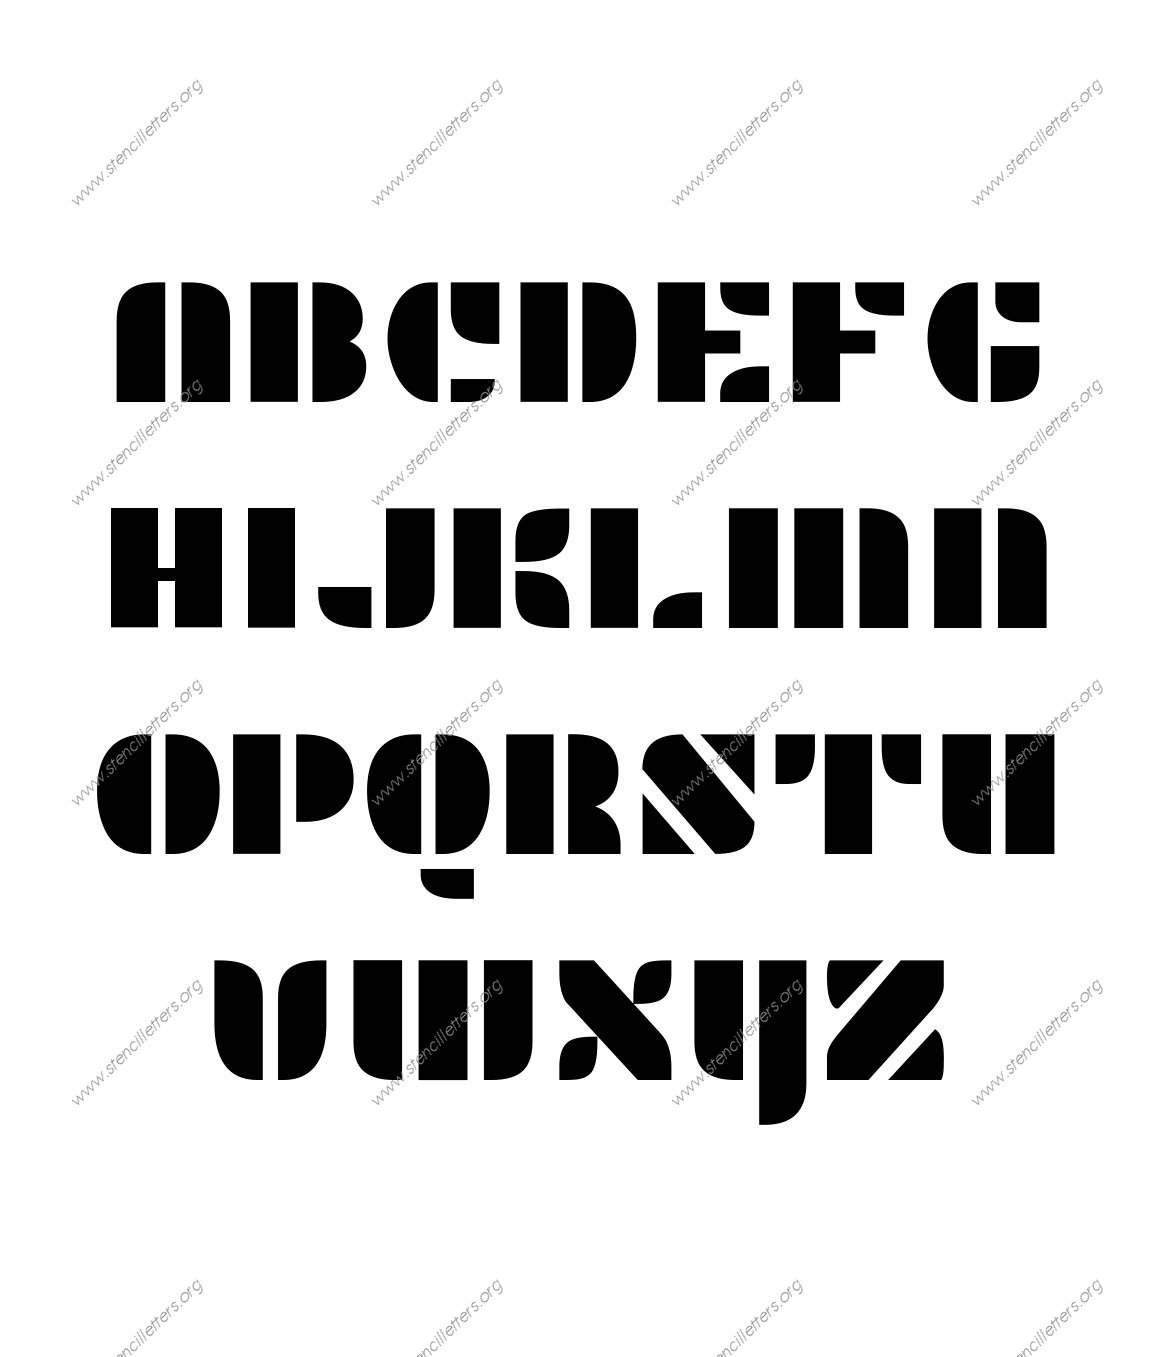 Display Decorative Stencil Letter Set